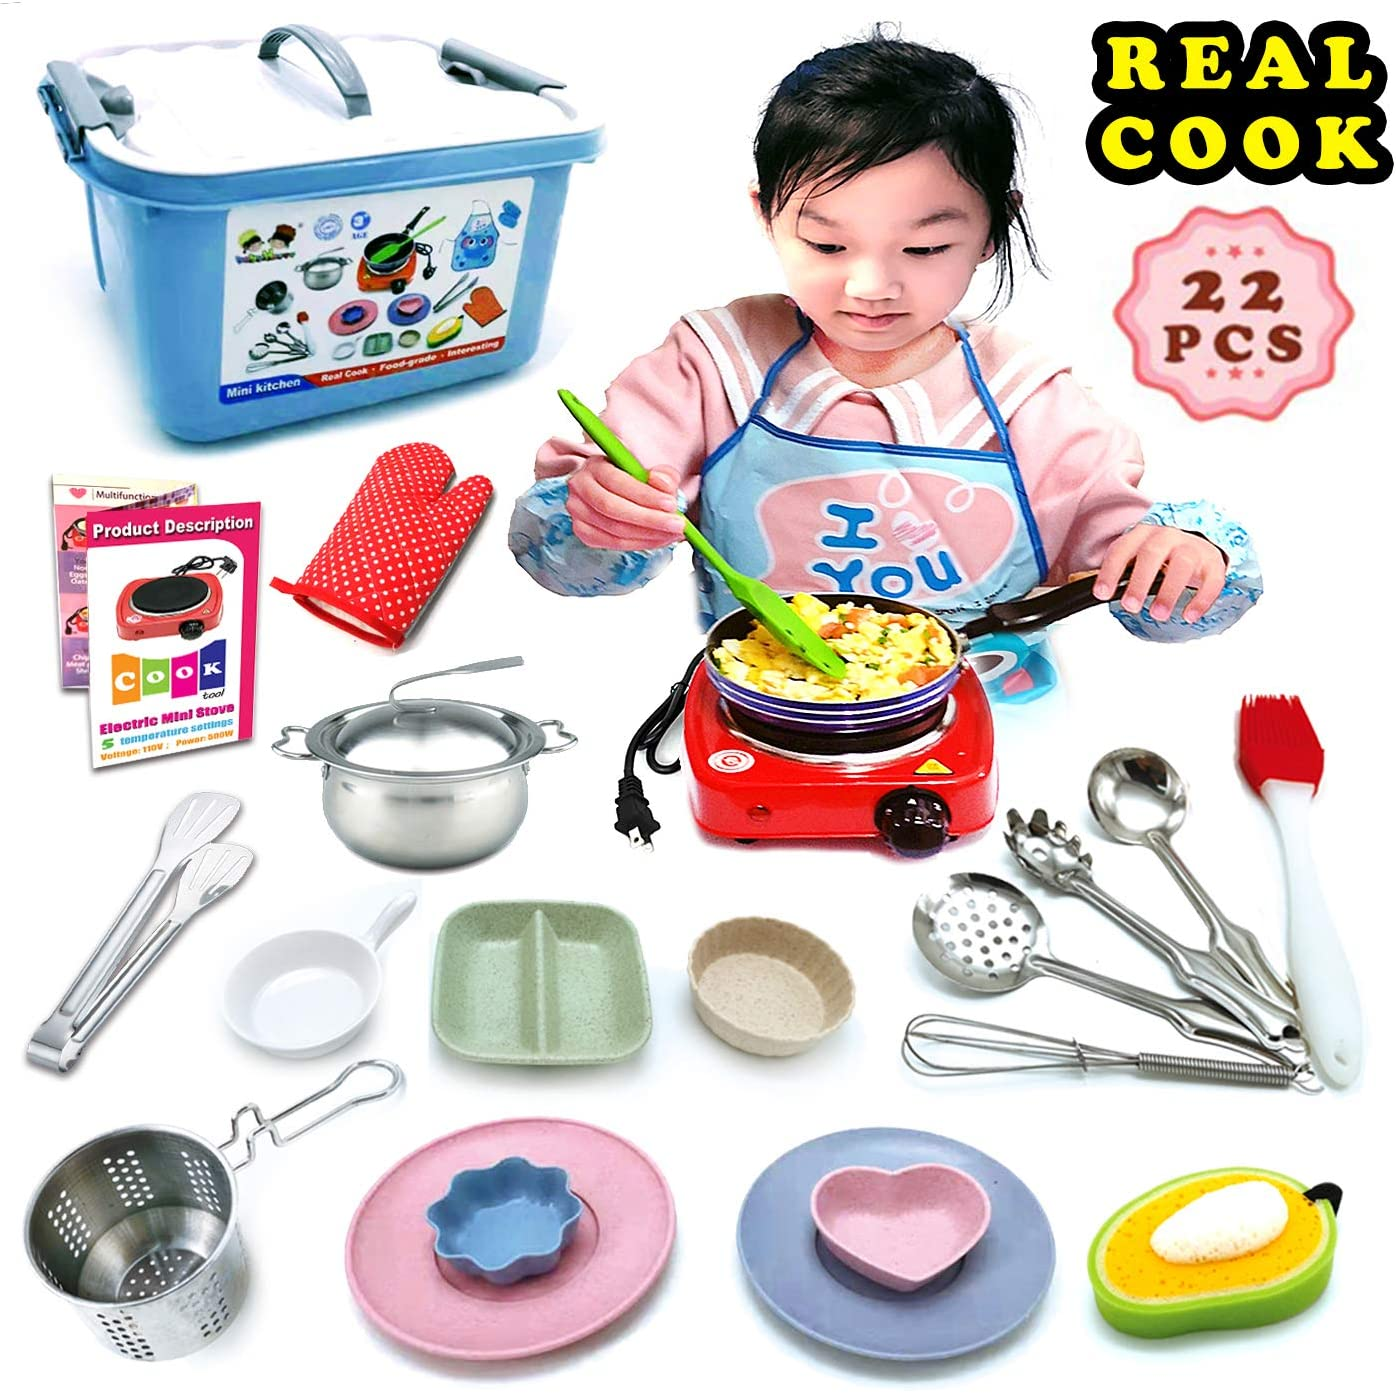 children Kids Cooking and Baking Set Junior Utensils DIY Play Kitchen Kit Real Cooking With Burner Stainless Steel Pots Pans for Easy Cook Supplies Chef Toy Costume Great Gifts for Kids Girls Boys